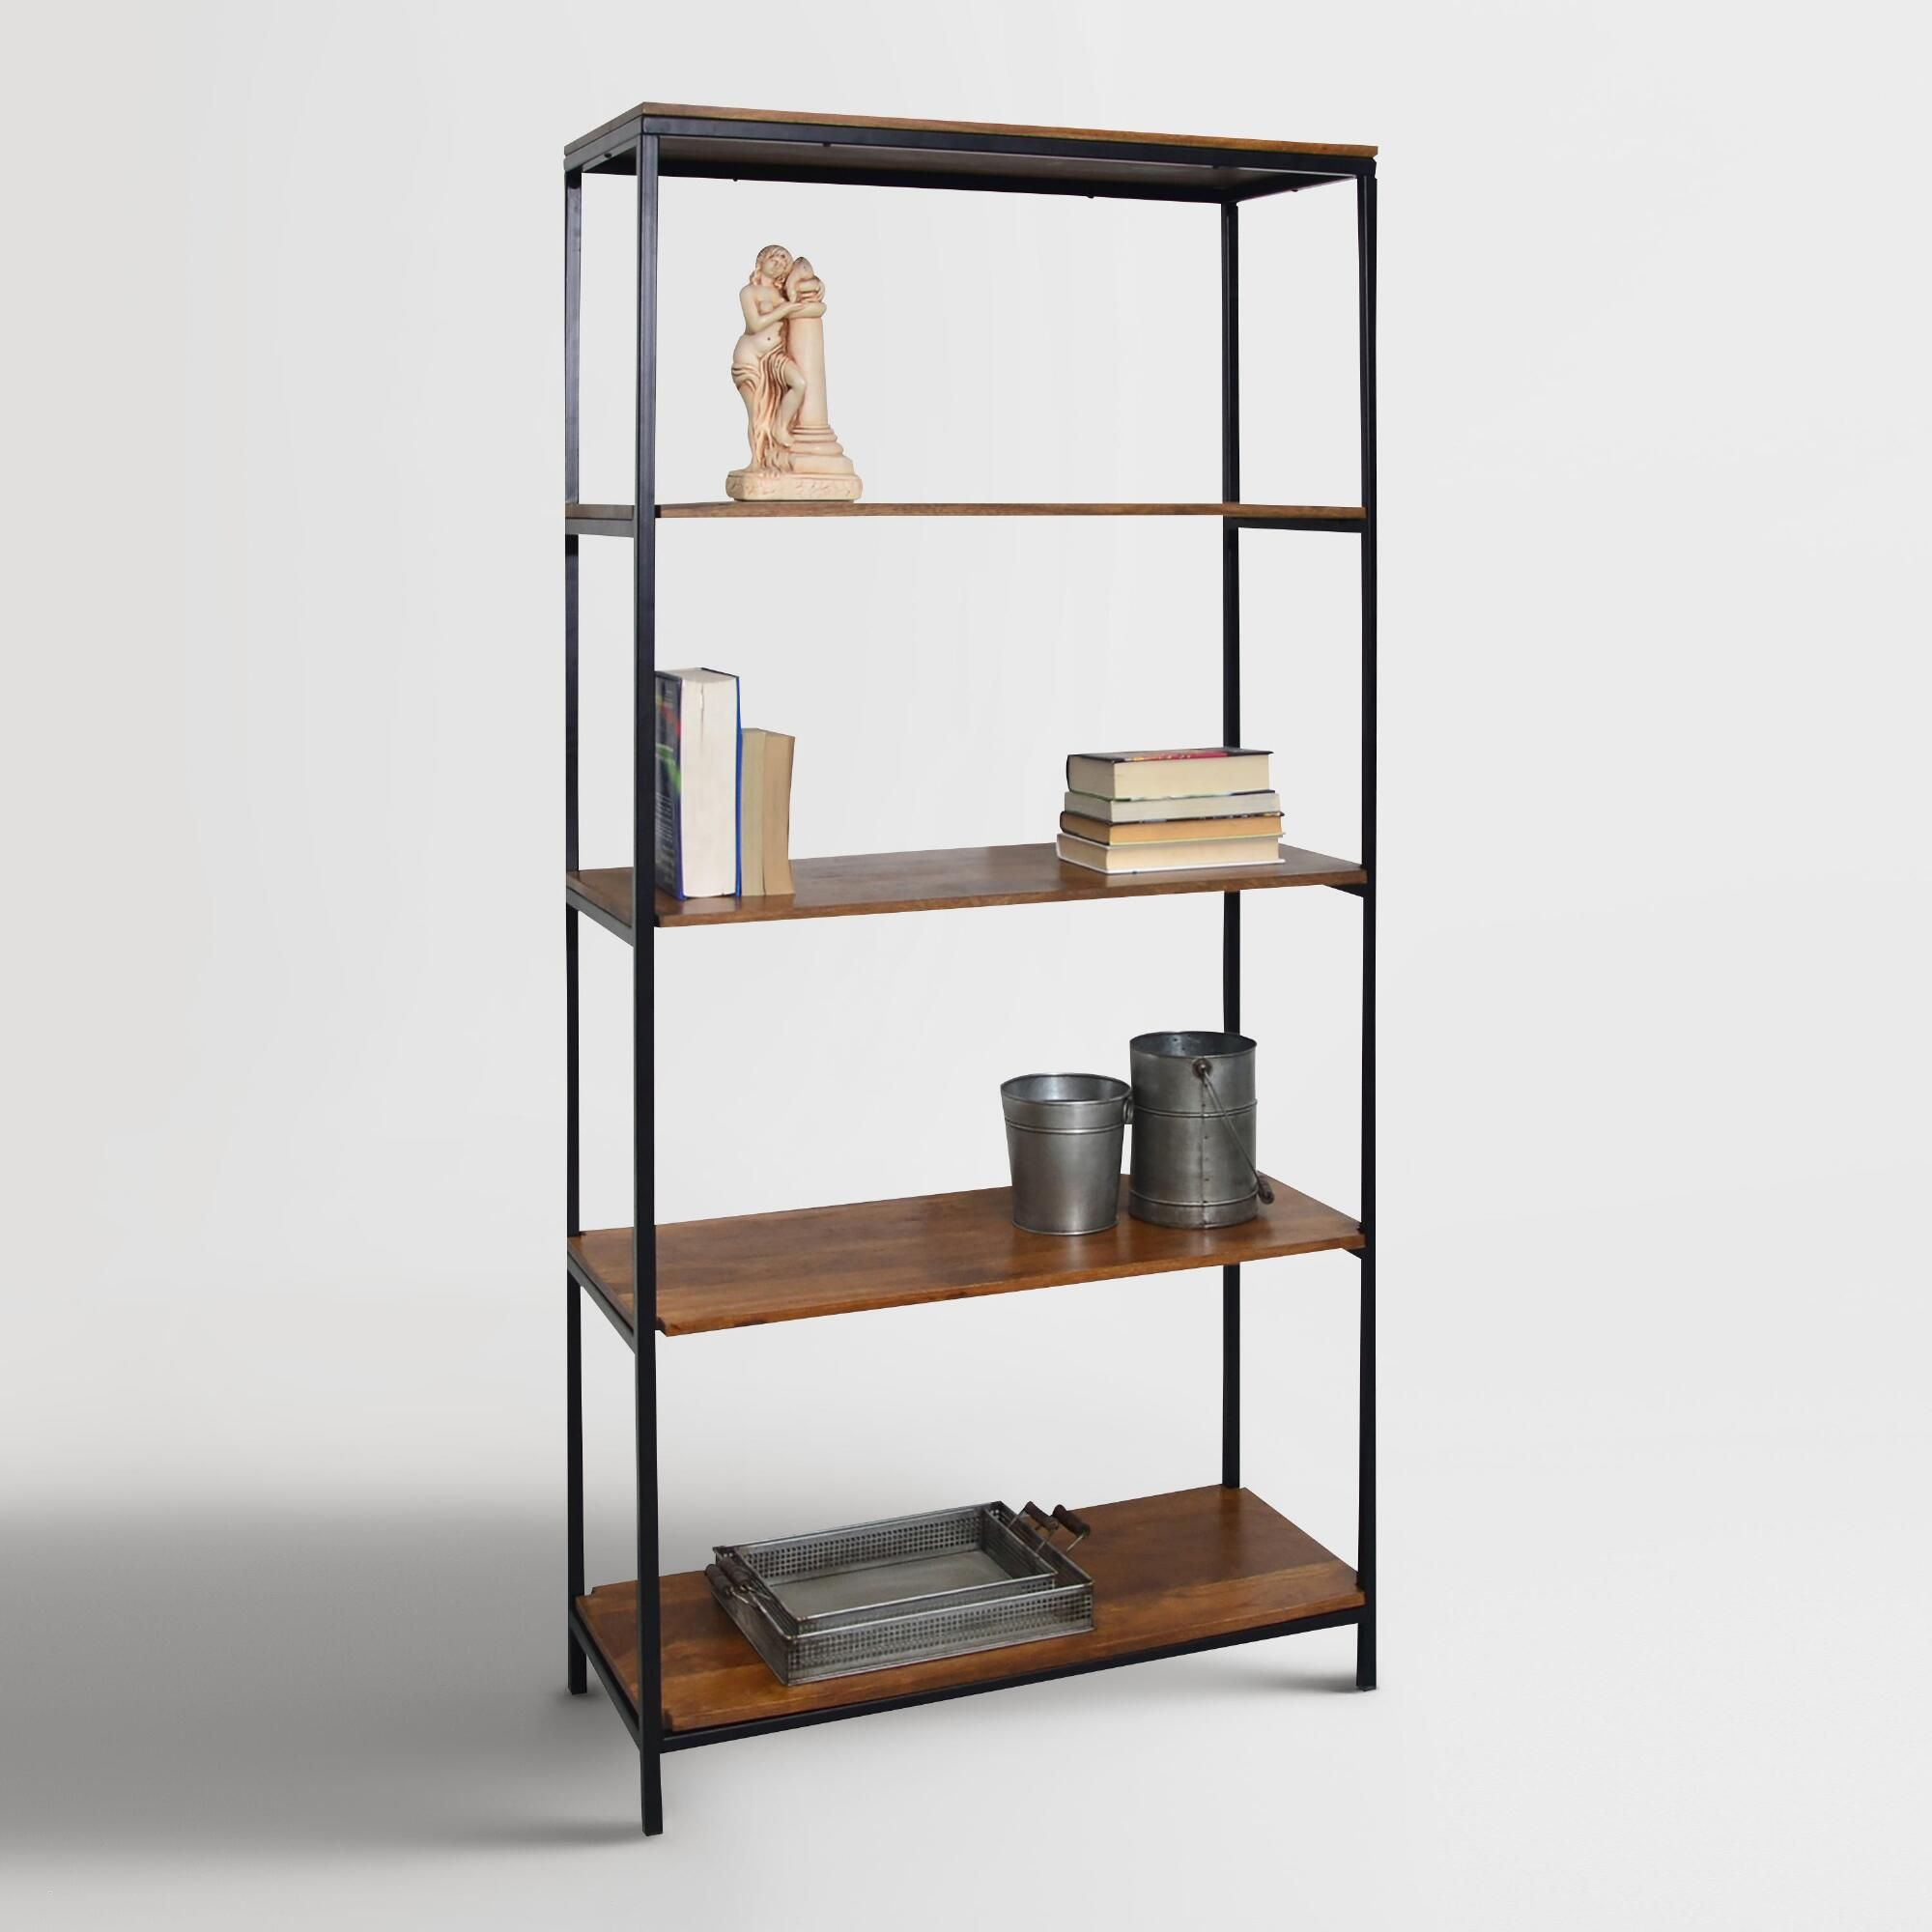 Our Bookcase Pairs A Black Metal Frame With Chestnut Finished Wood Creating An Industrial Feel It Boasts Four Roomy Open Shelves For Displaying Photos And